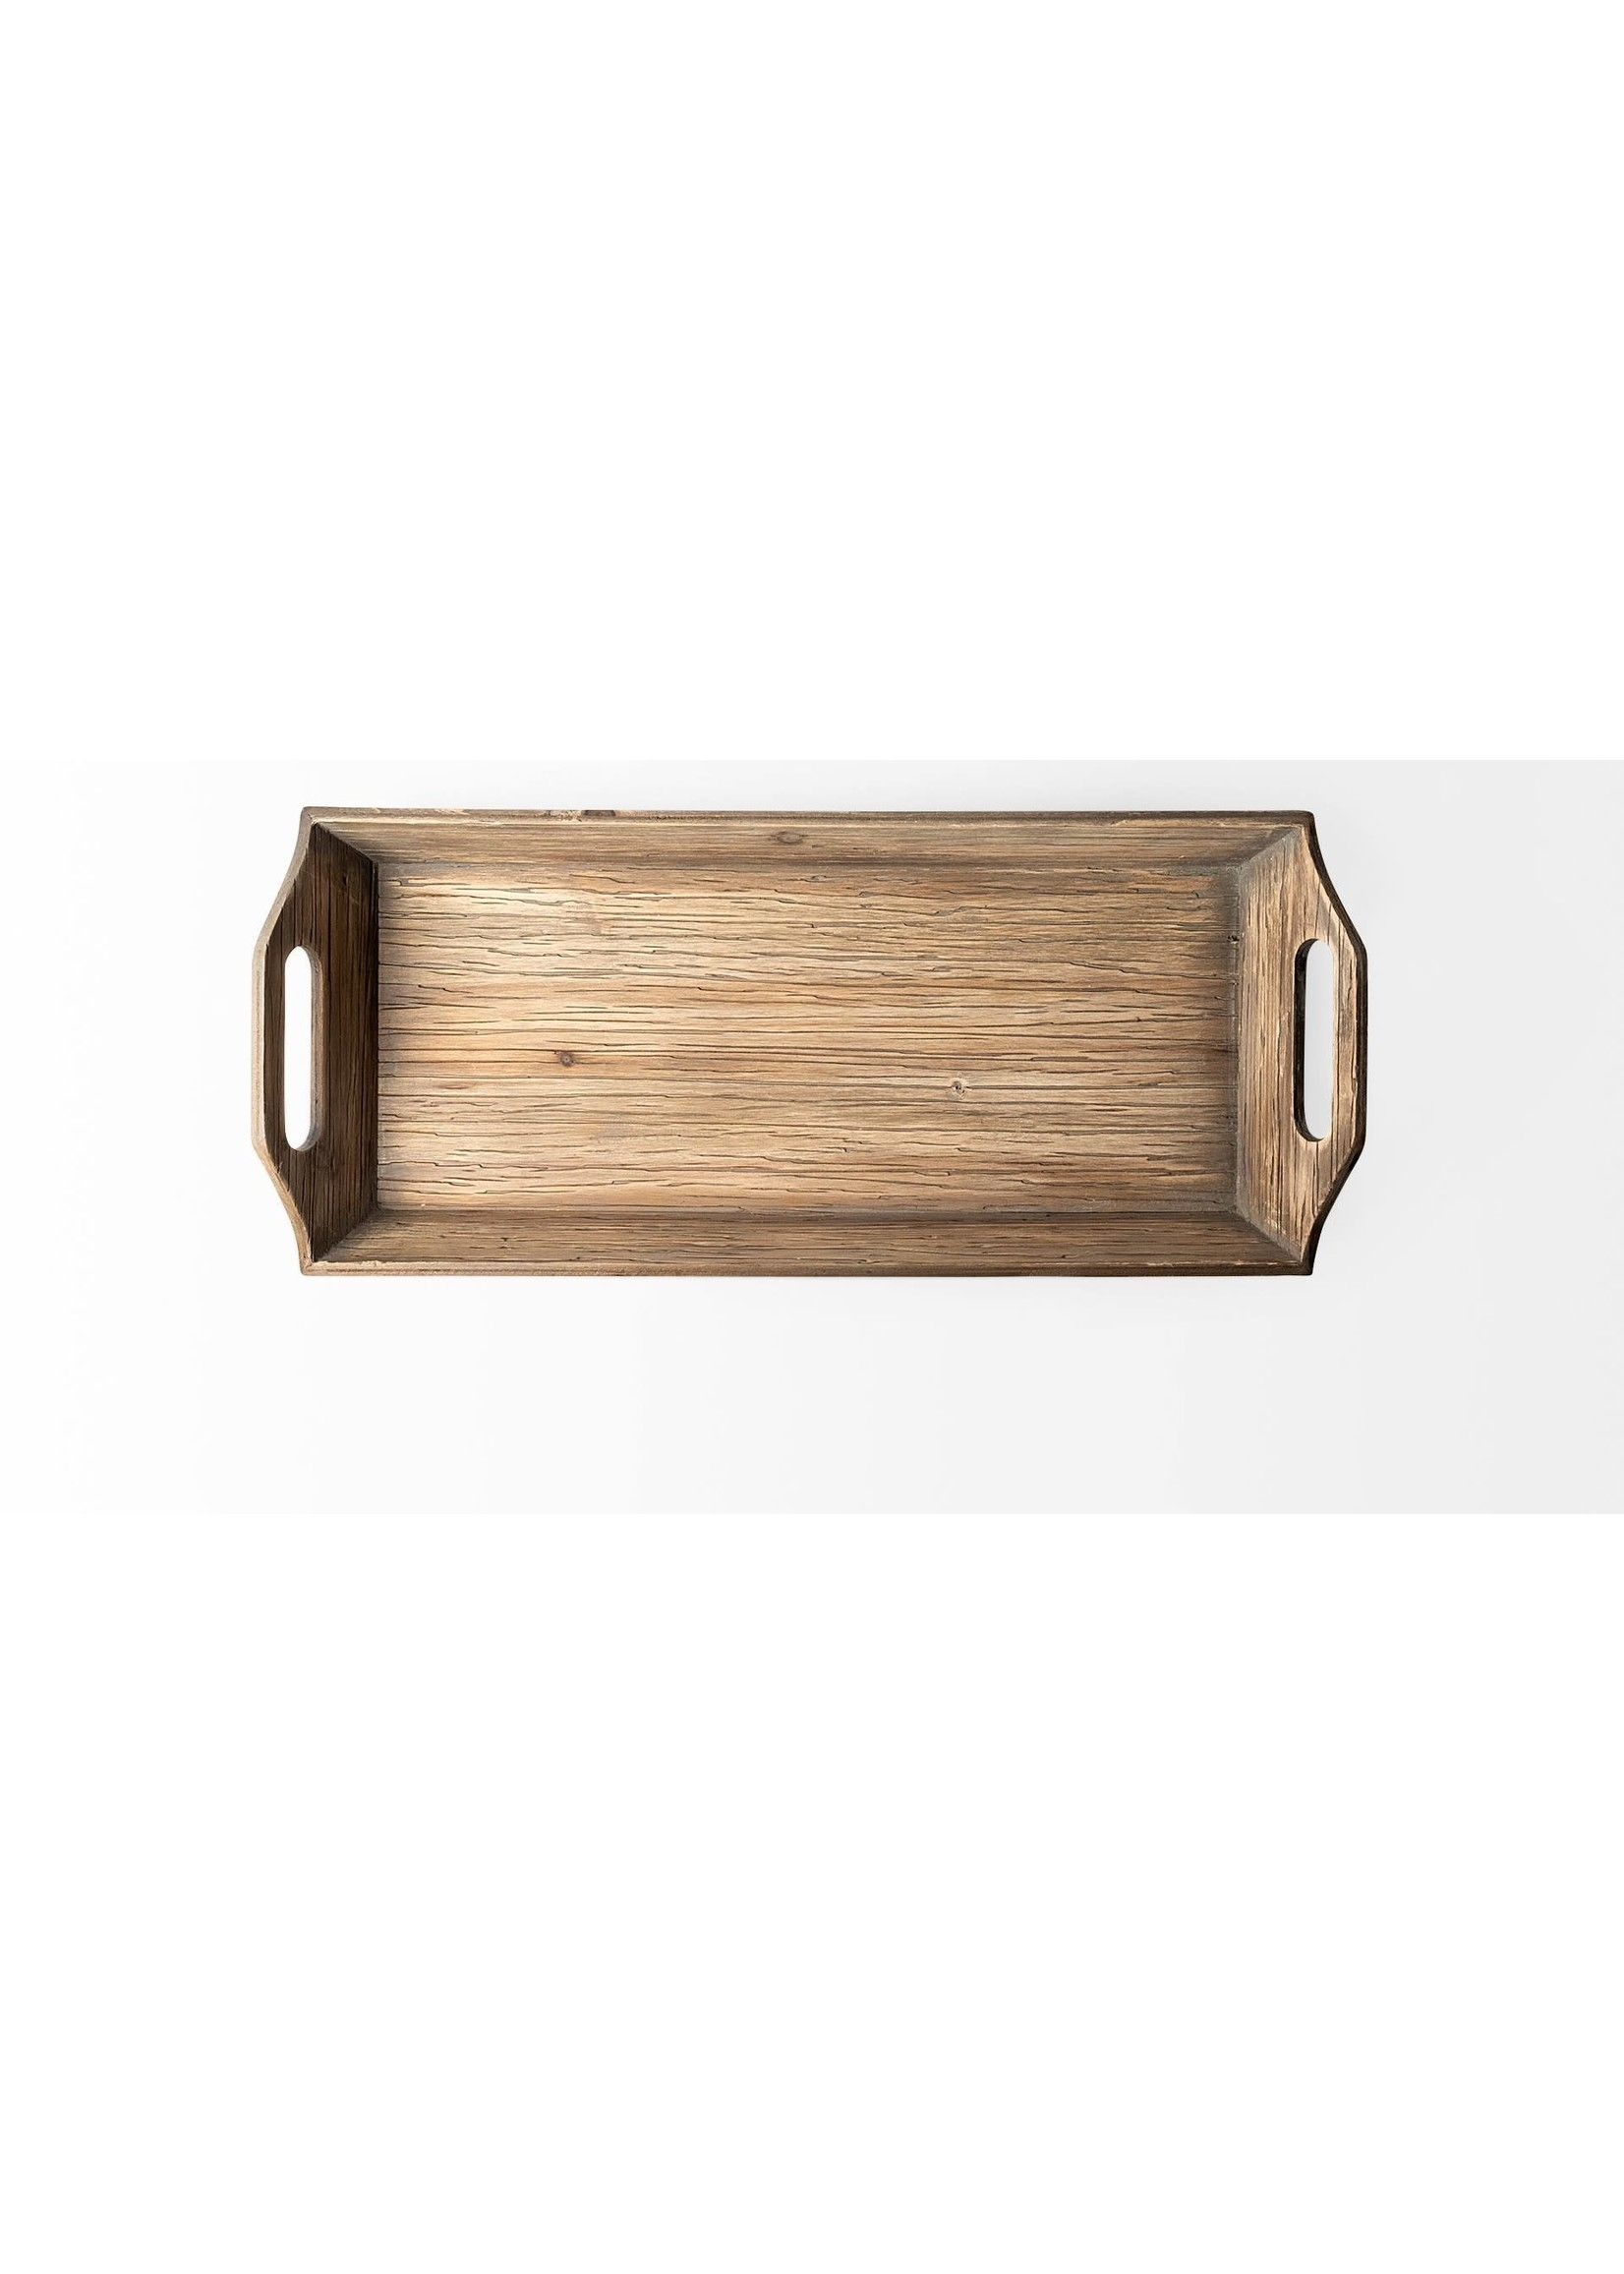 TANWY WOODEN TRAY - SMALL